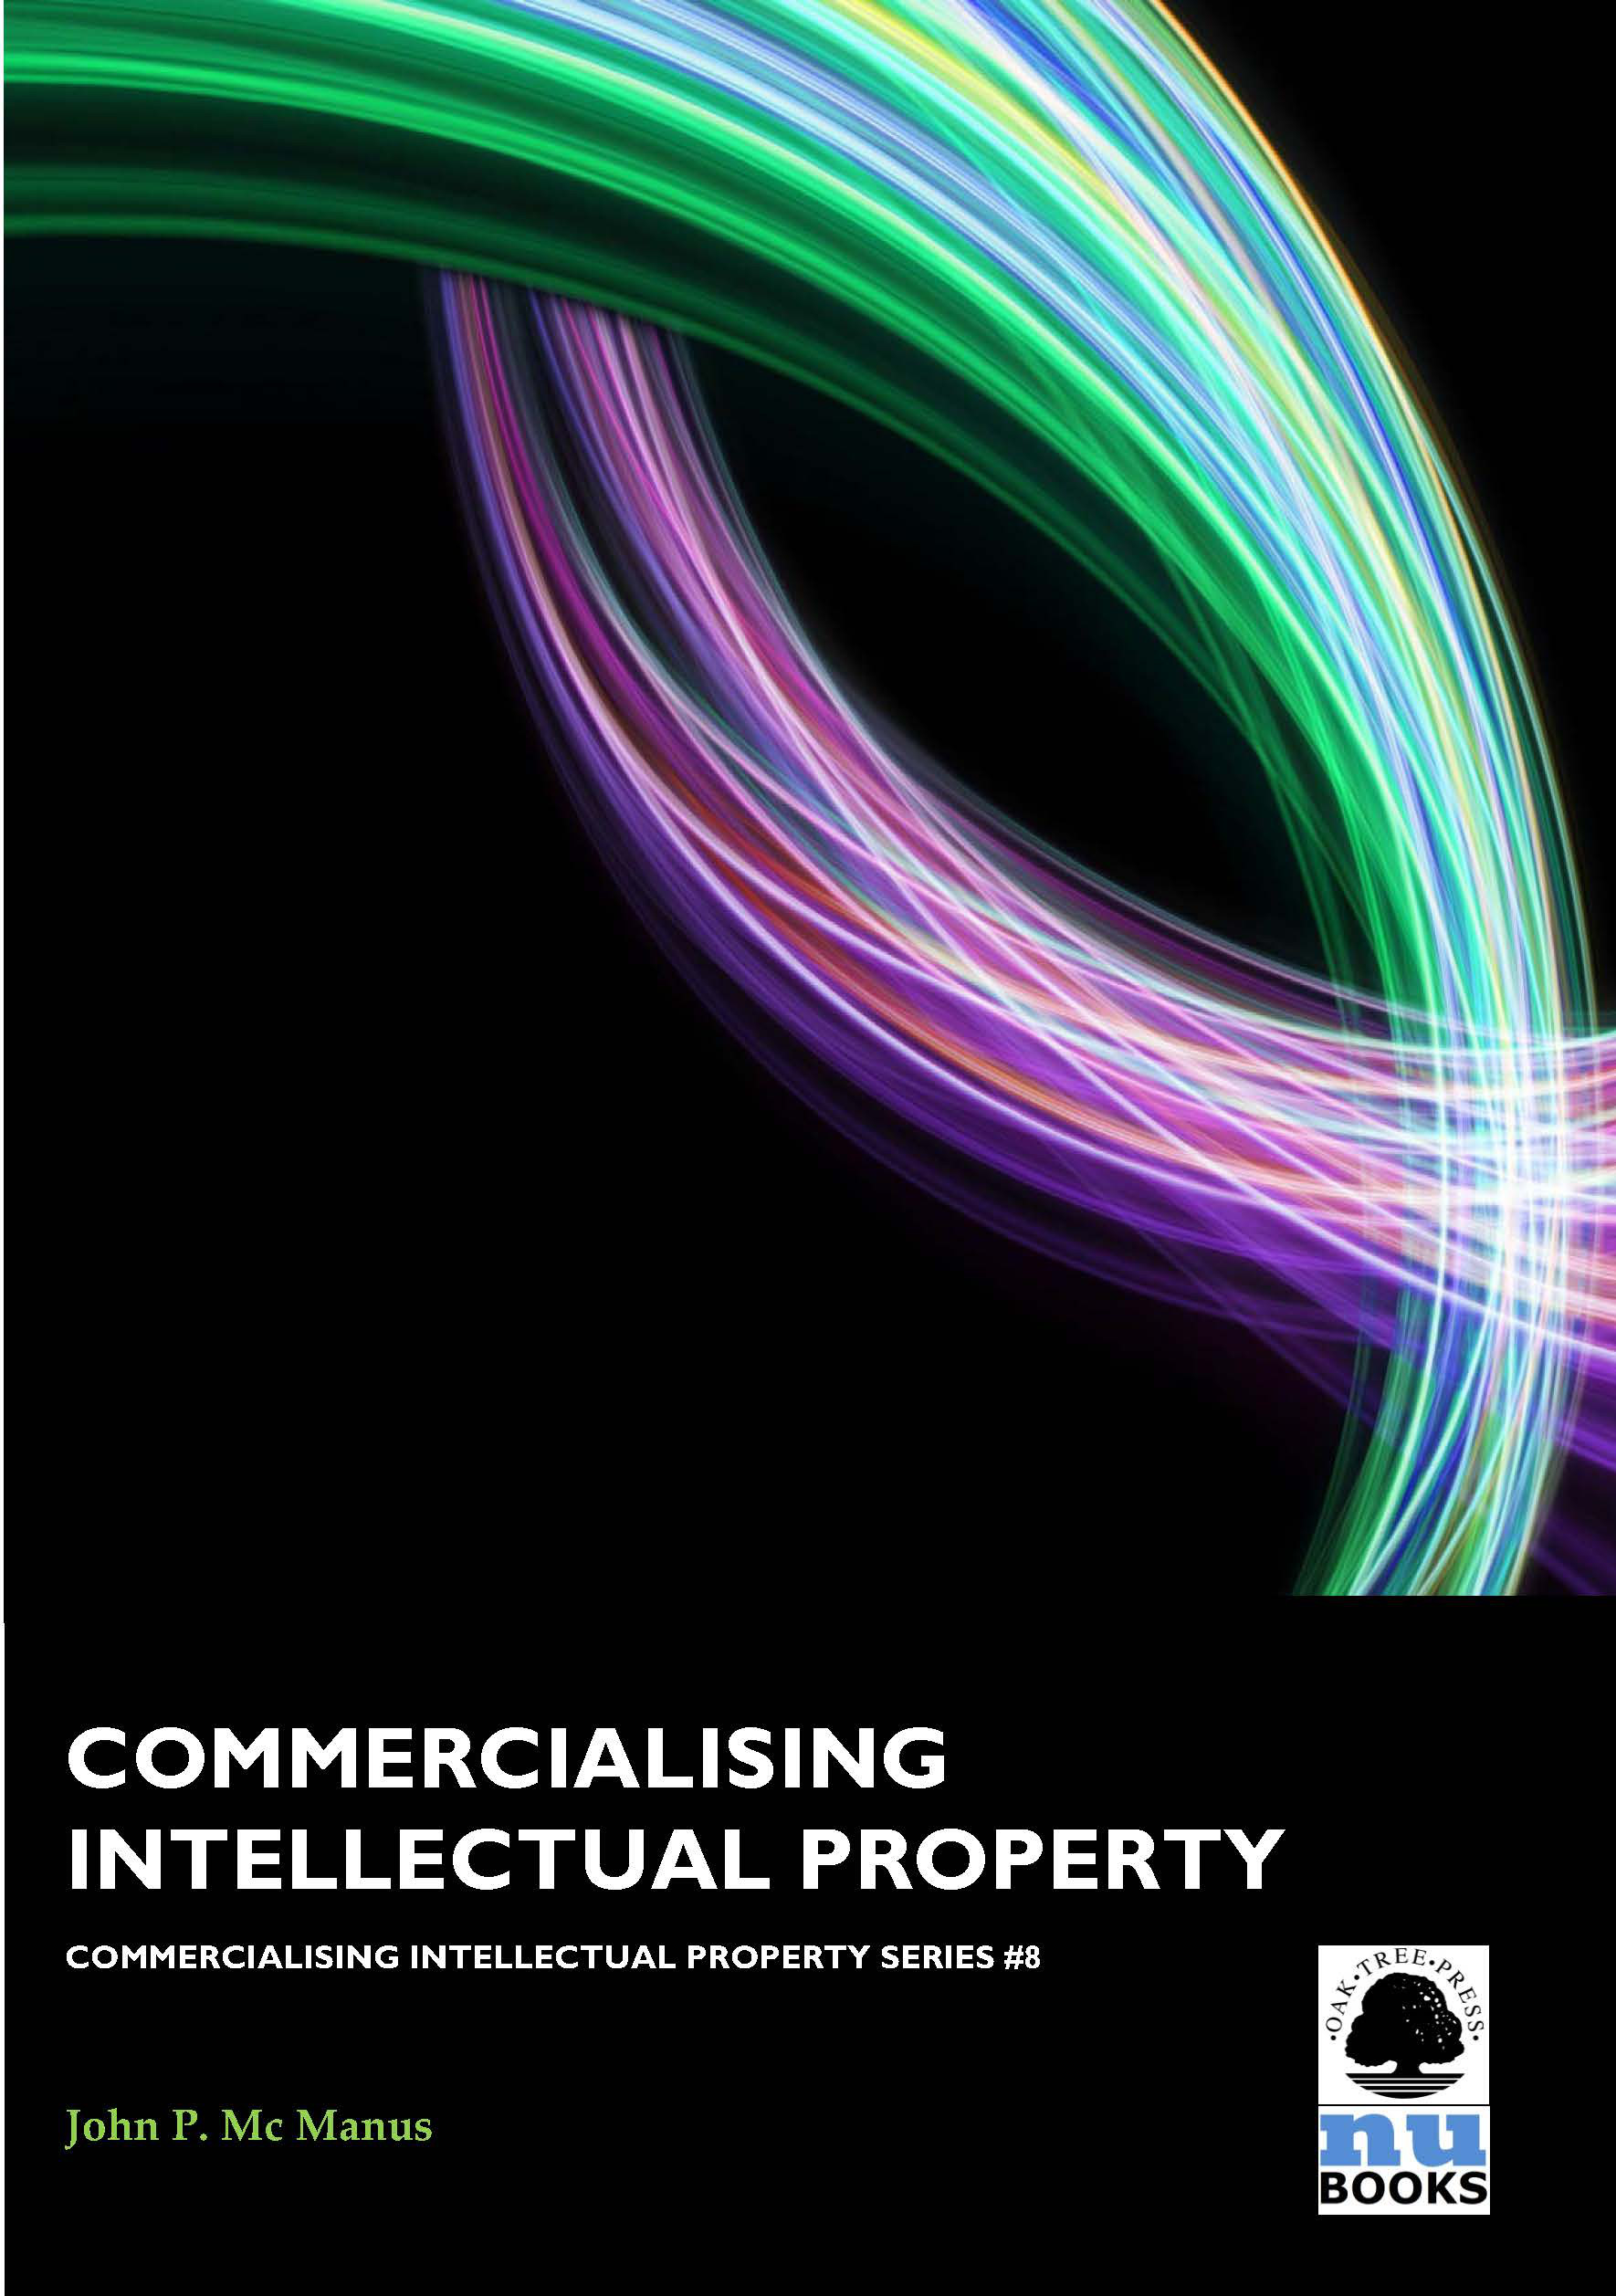 Commercialising Intellectual Property